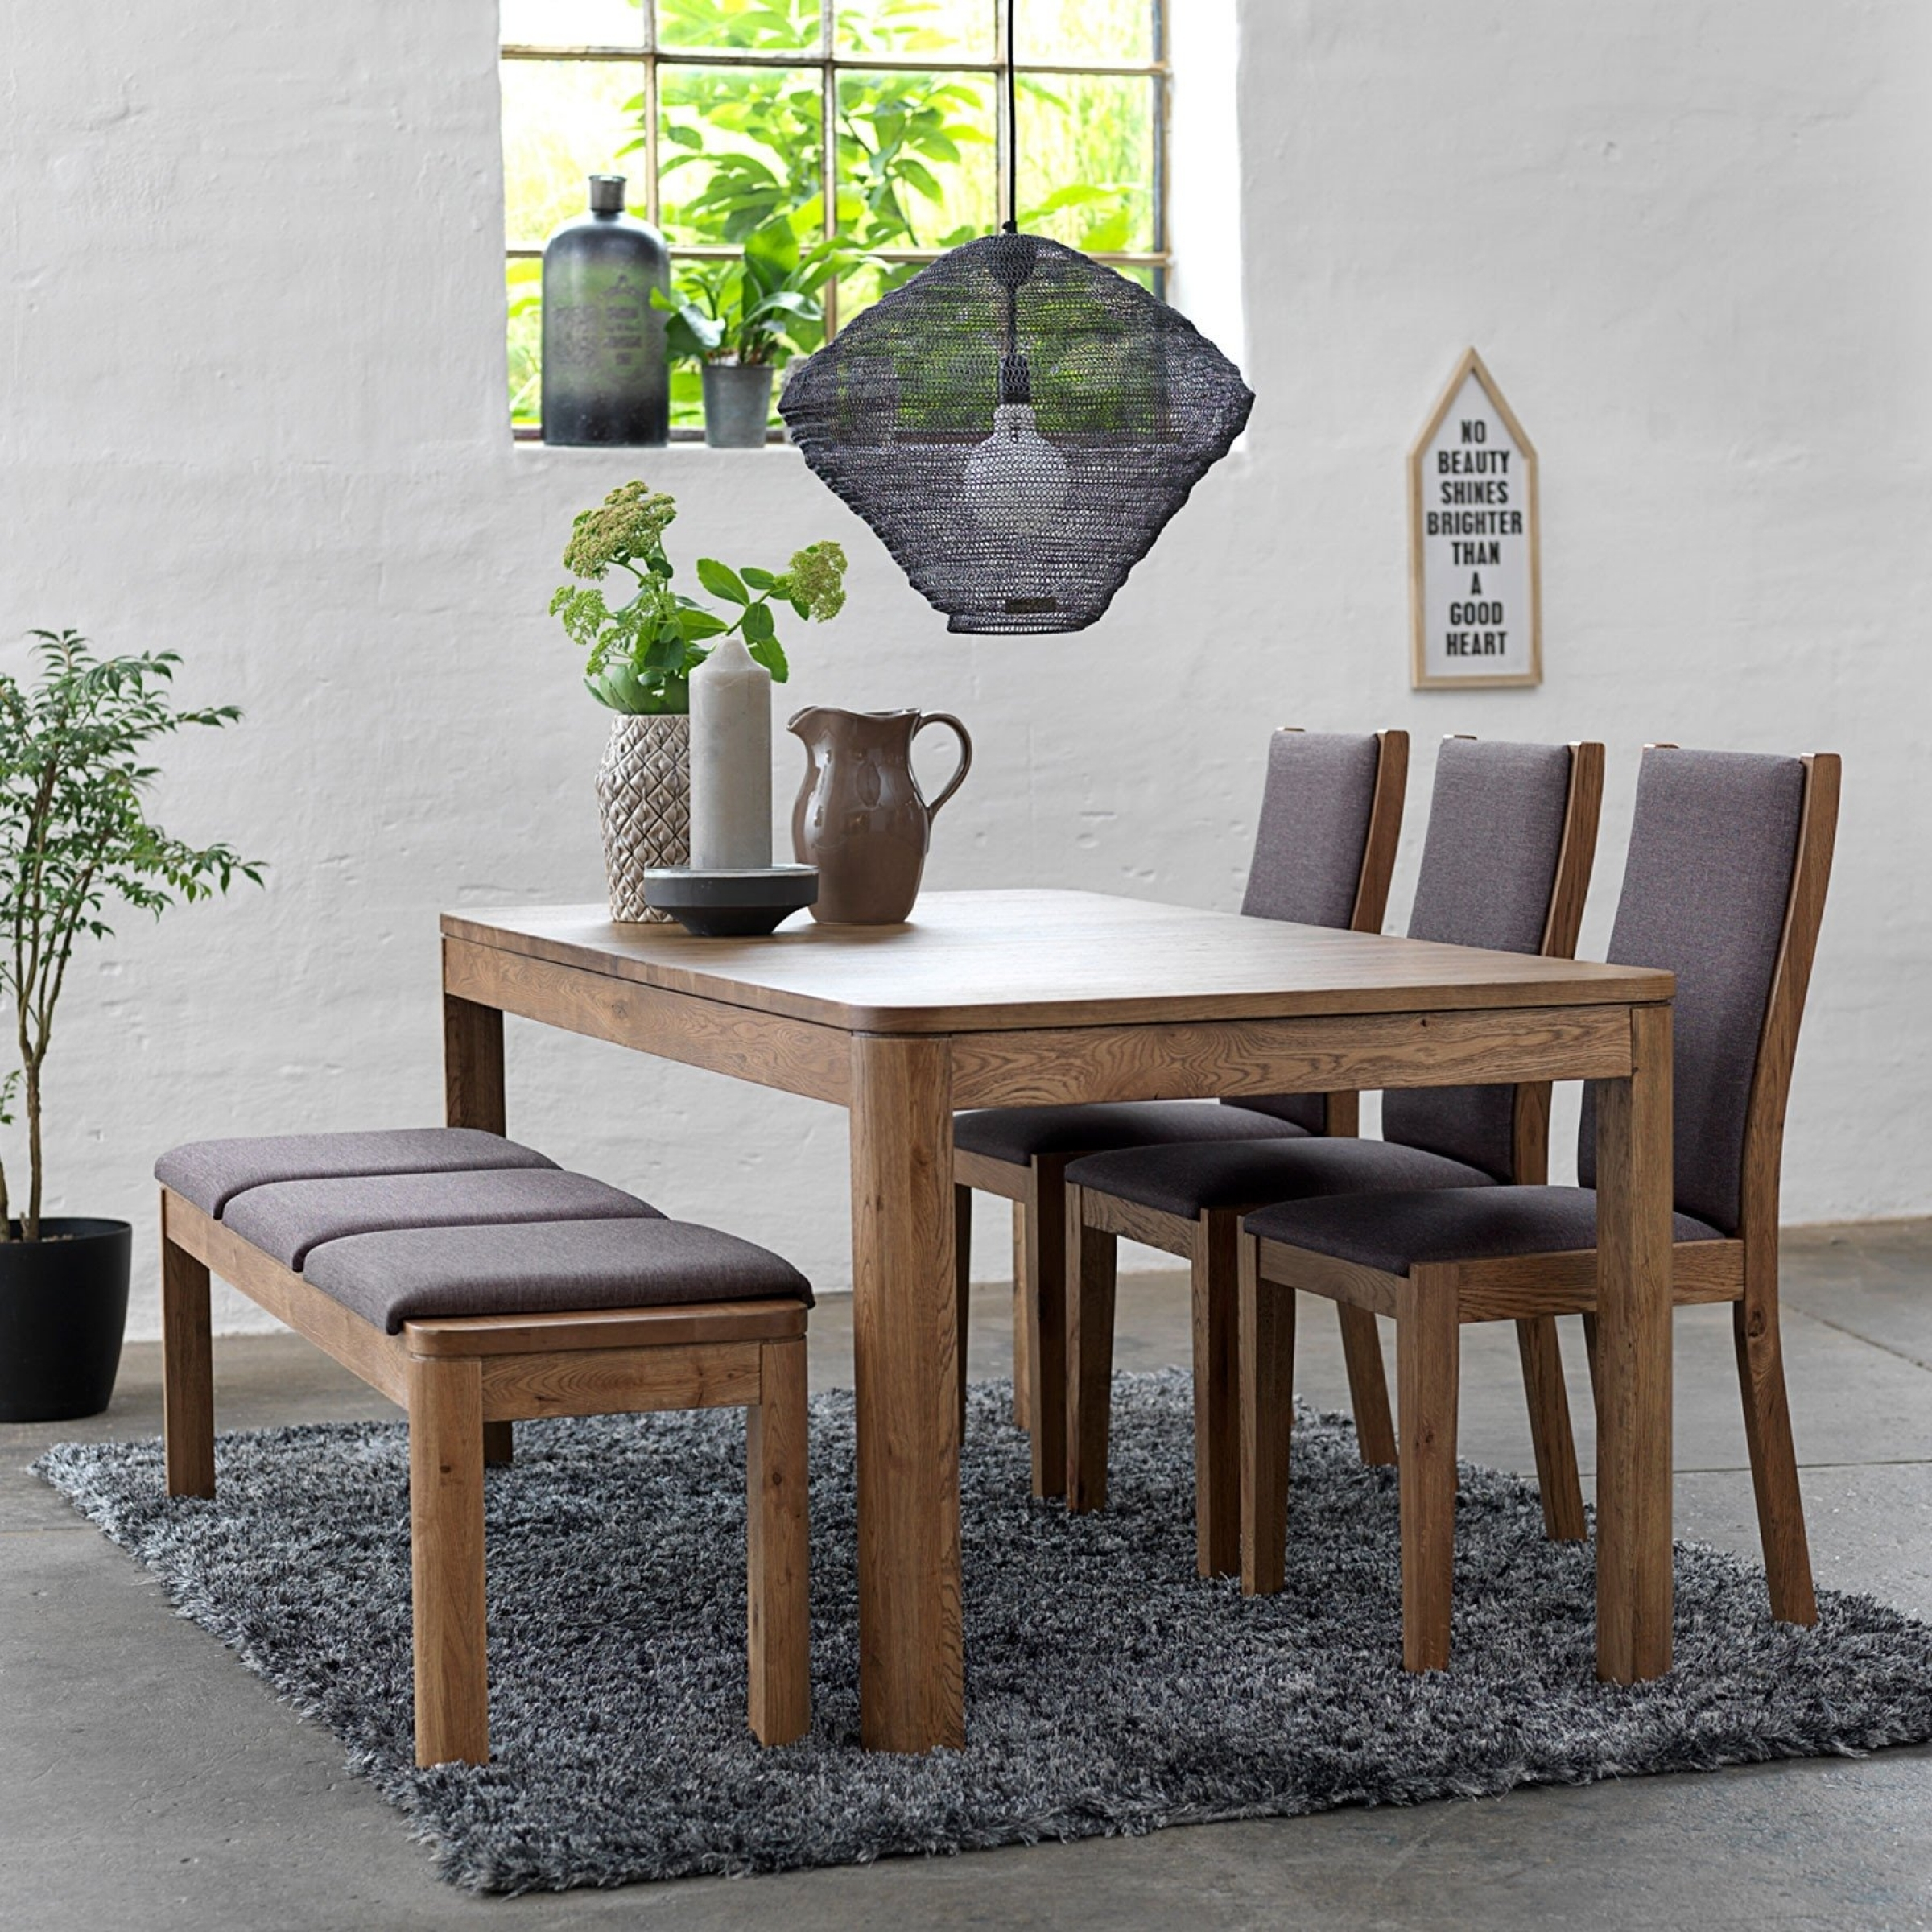 Dining Room Sets With Bench: 50+ Dining Table With Bench You'll Love In 2020